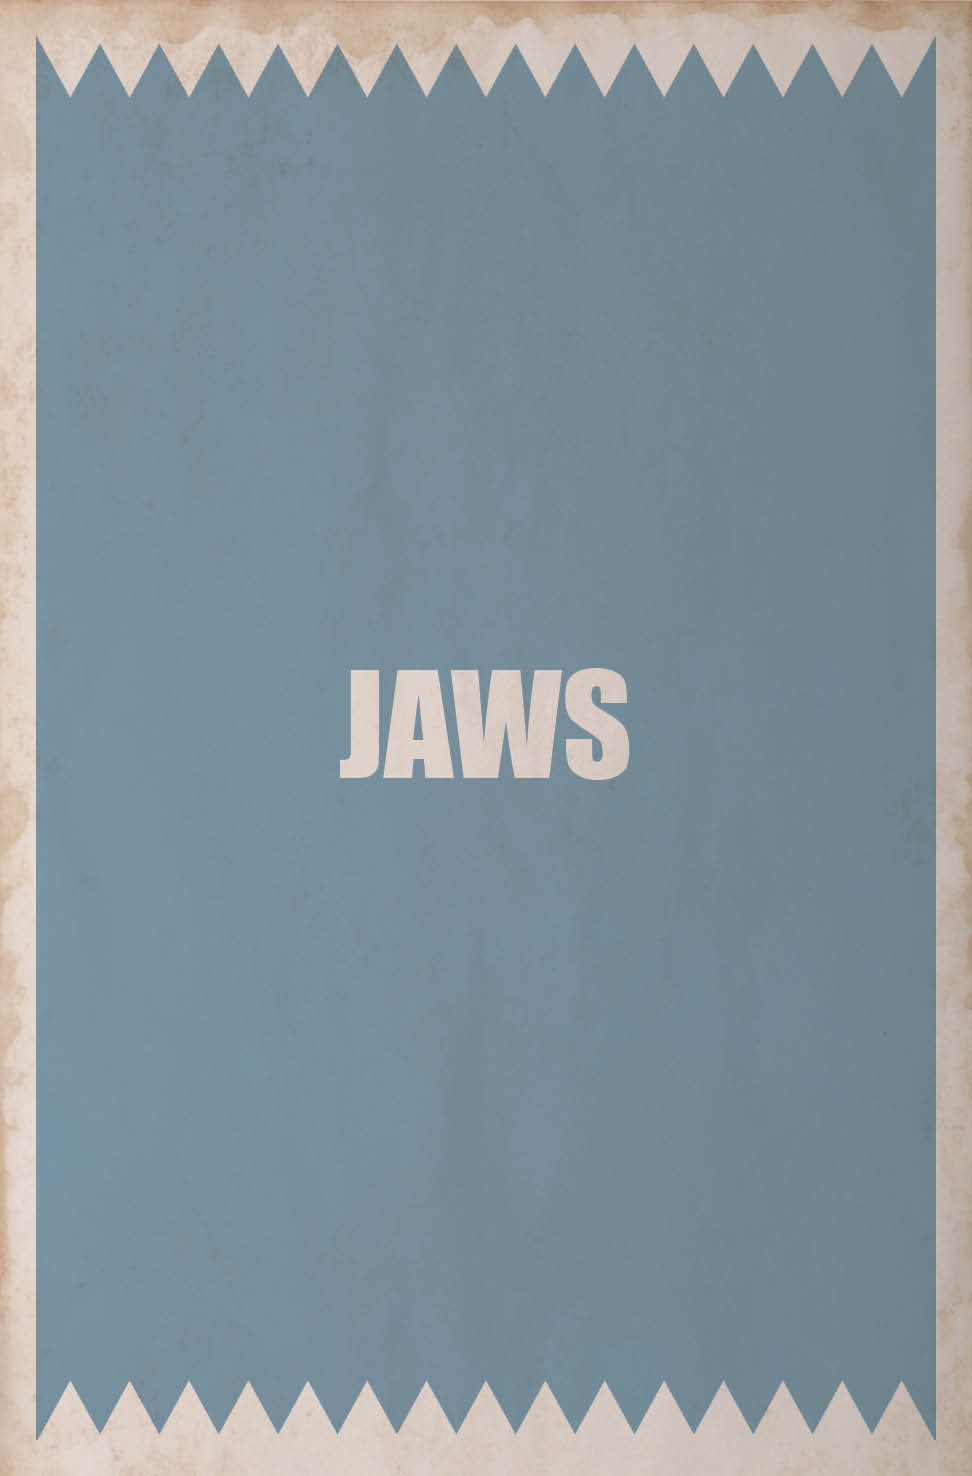 jaws minimalist movie poster | Orangeinks